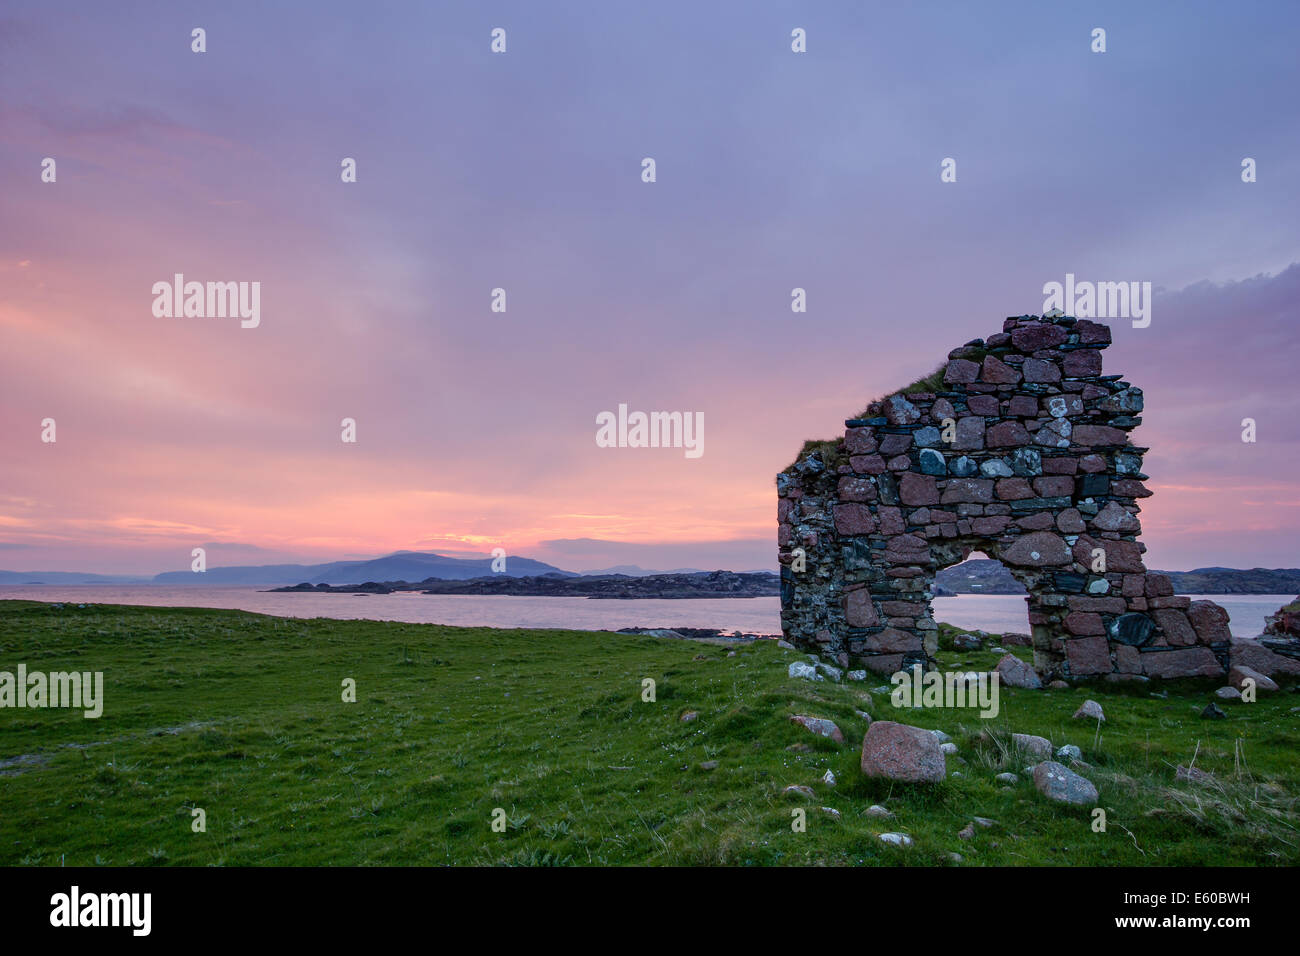 Sunrise in Iona - Inner Hebrides of Scotland - Stock Image